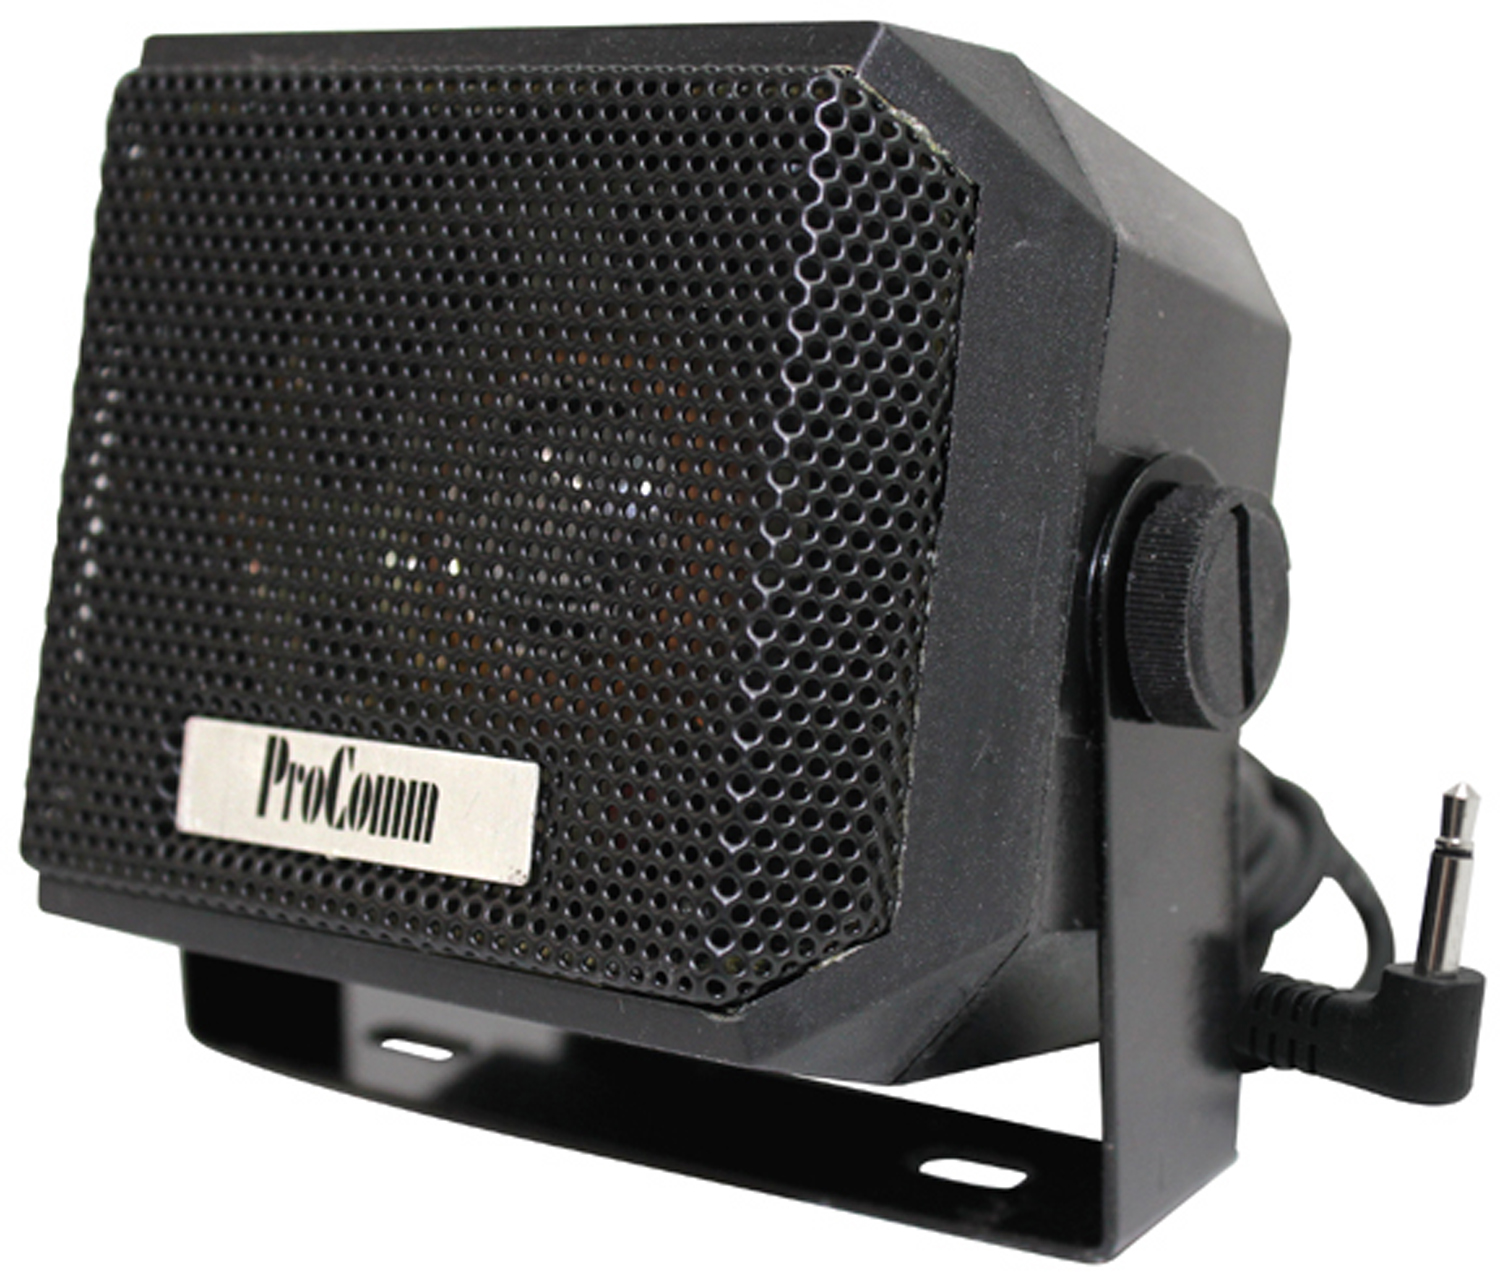 "PROCOMM- 5 WATT 2-1/4"" CB EXTENSION SPEAKER"